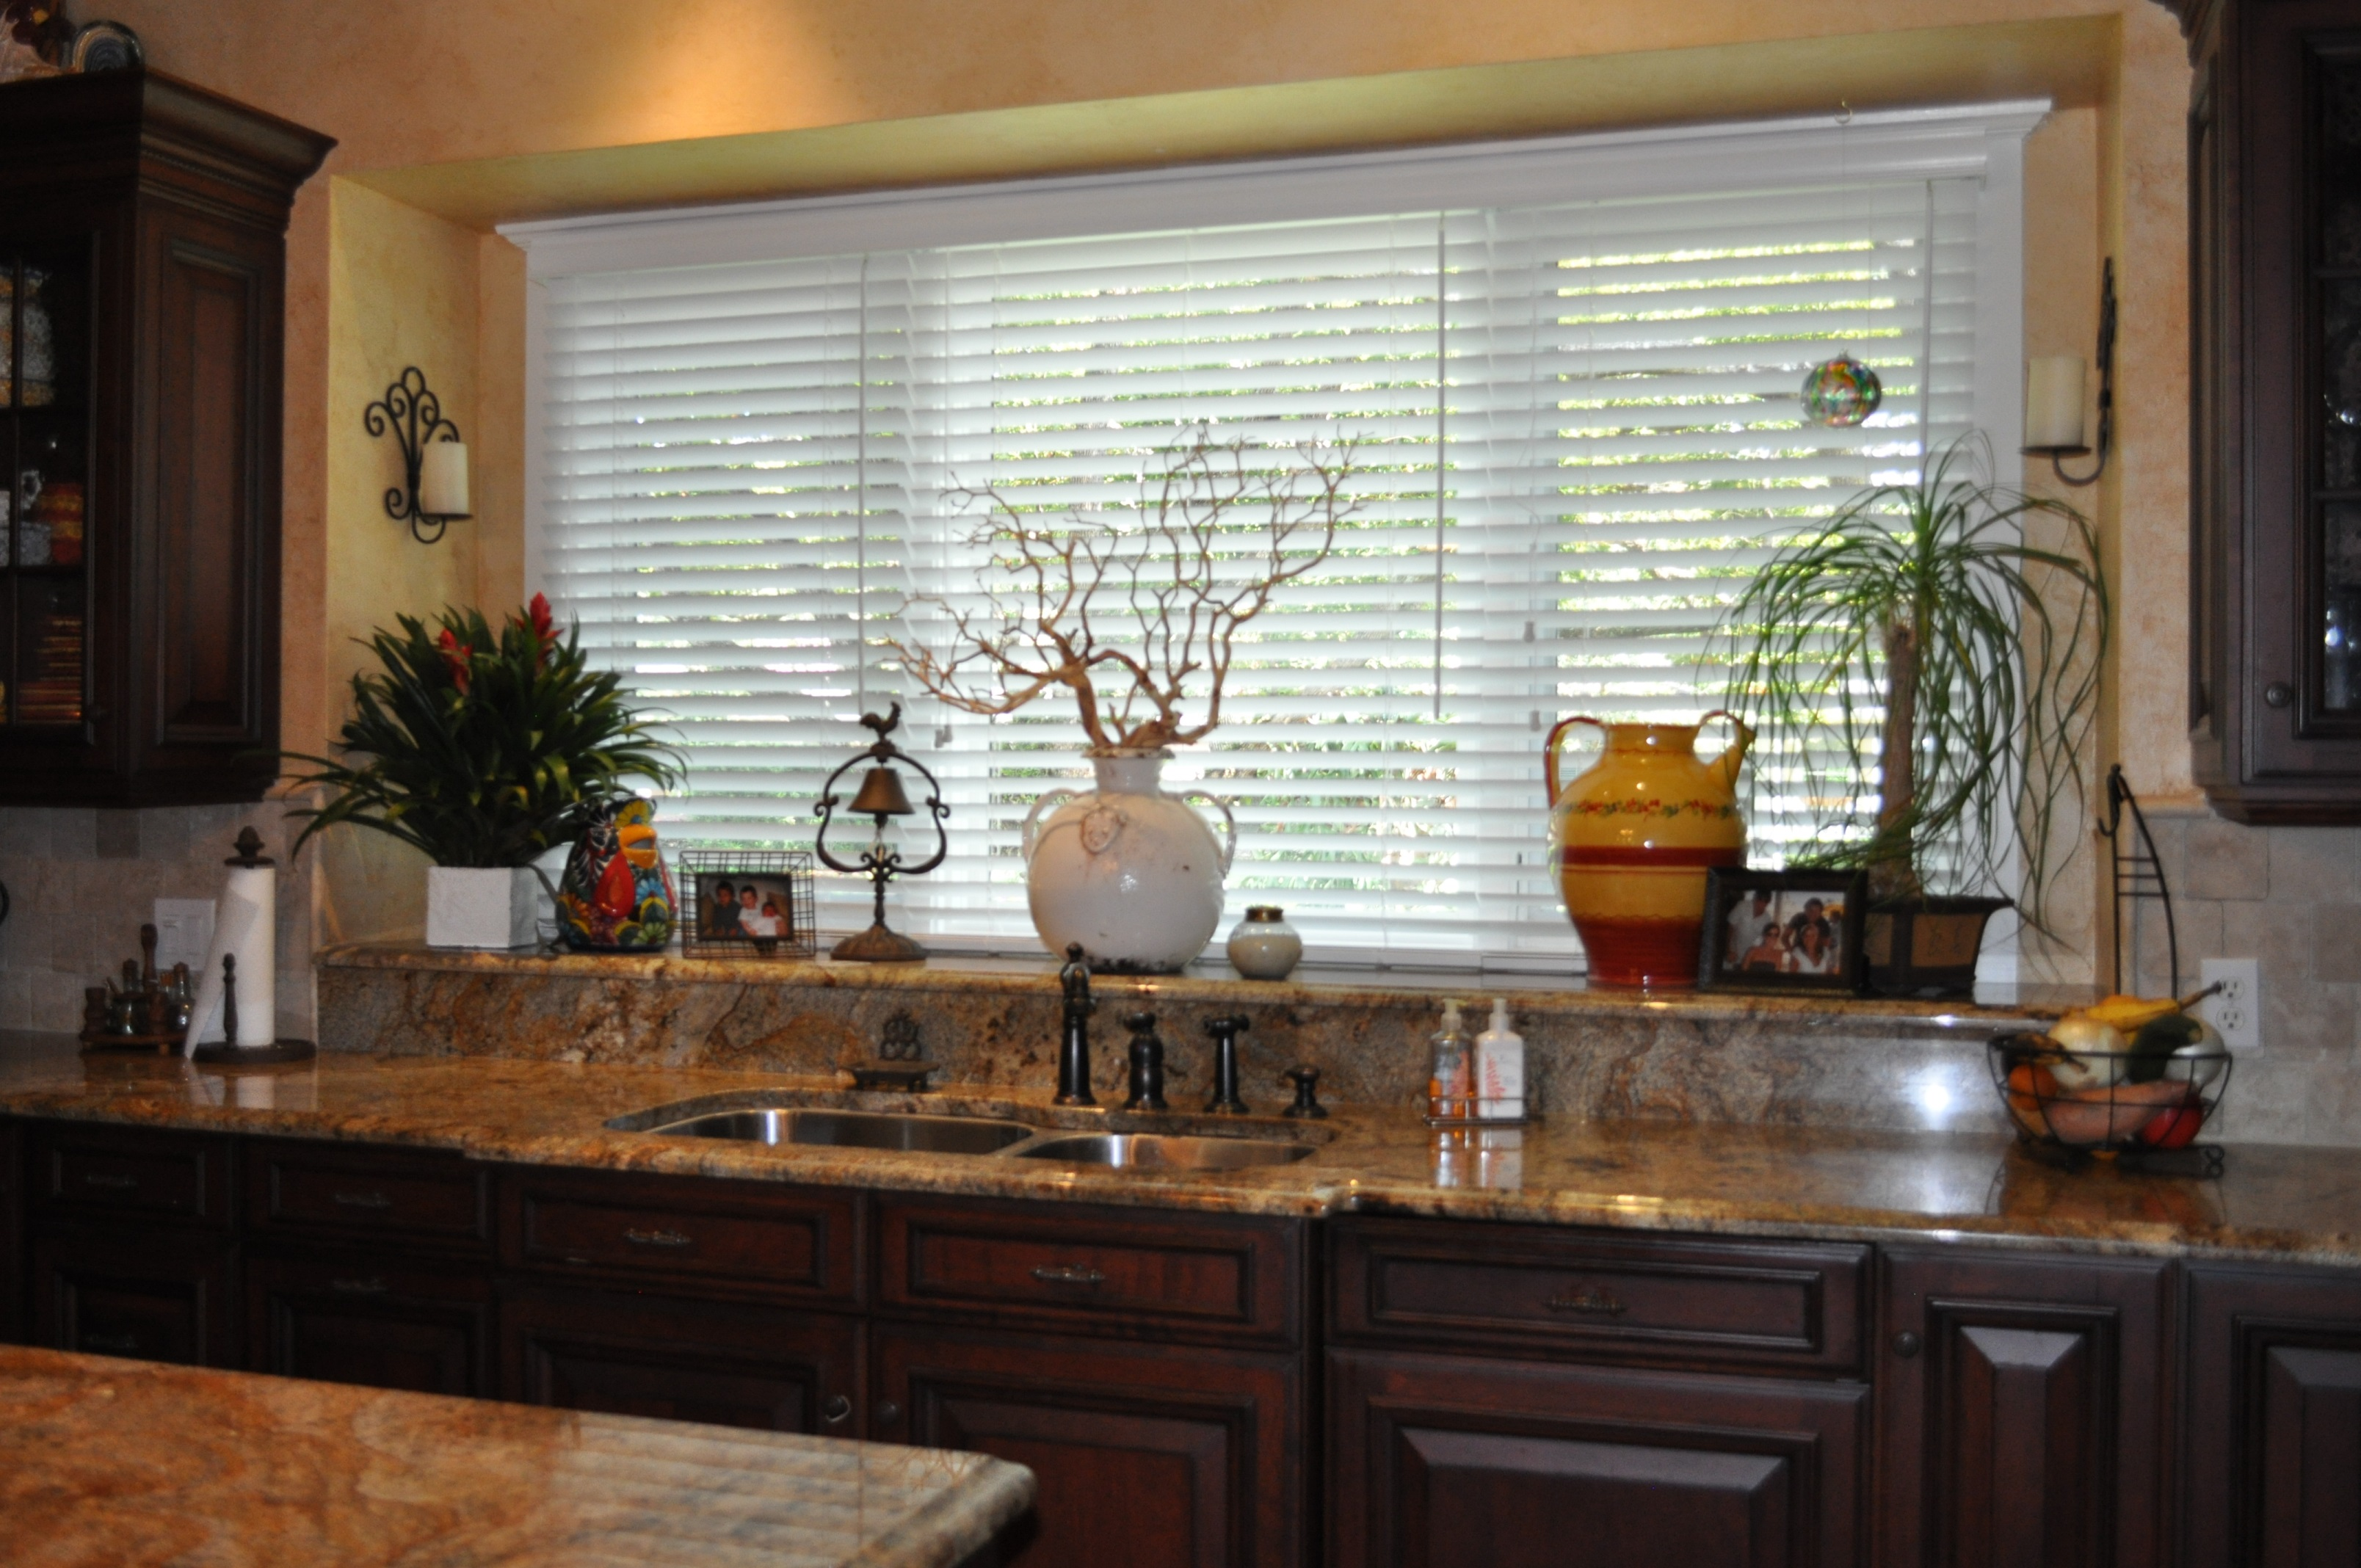 plantation shutters Astatula, window blinds, roller shades